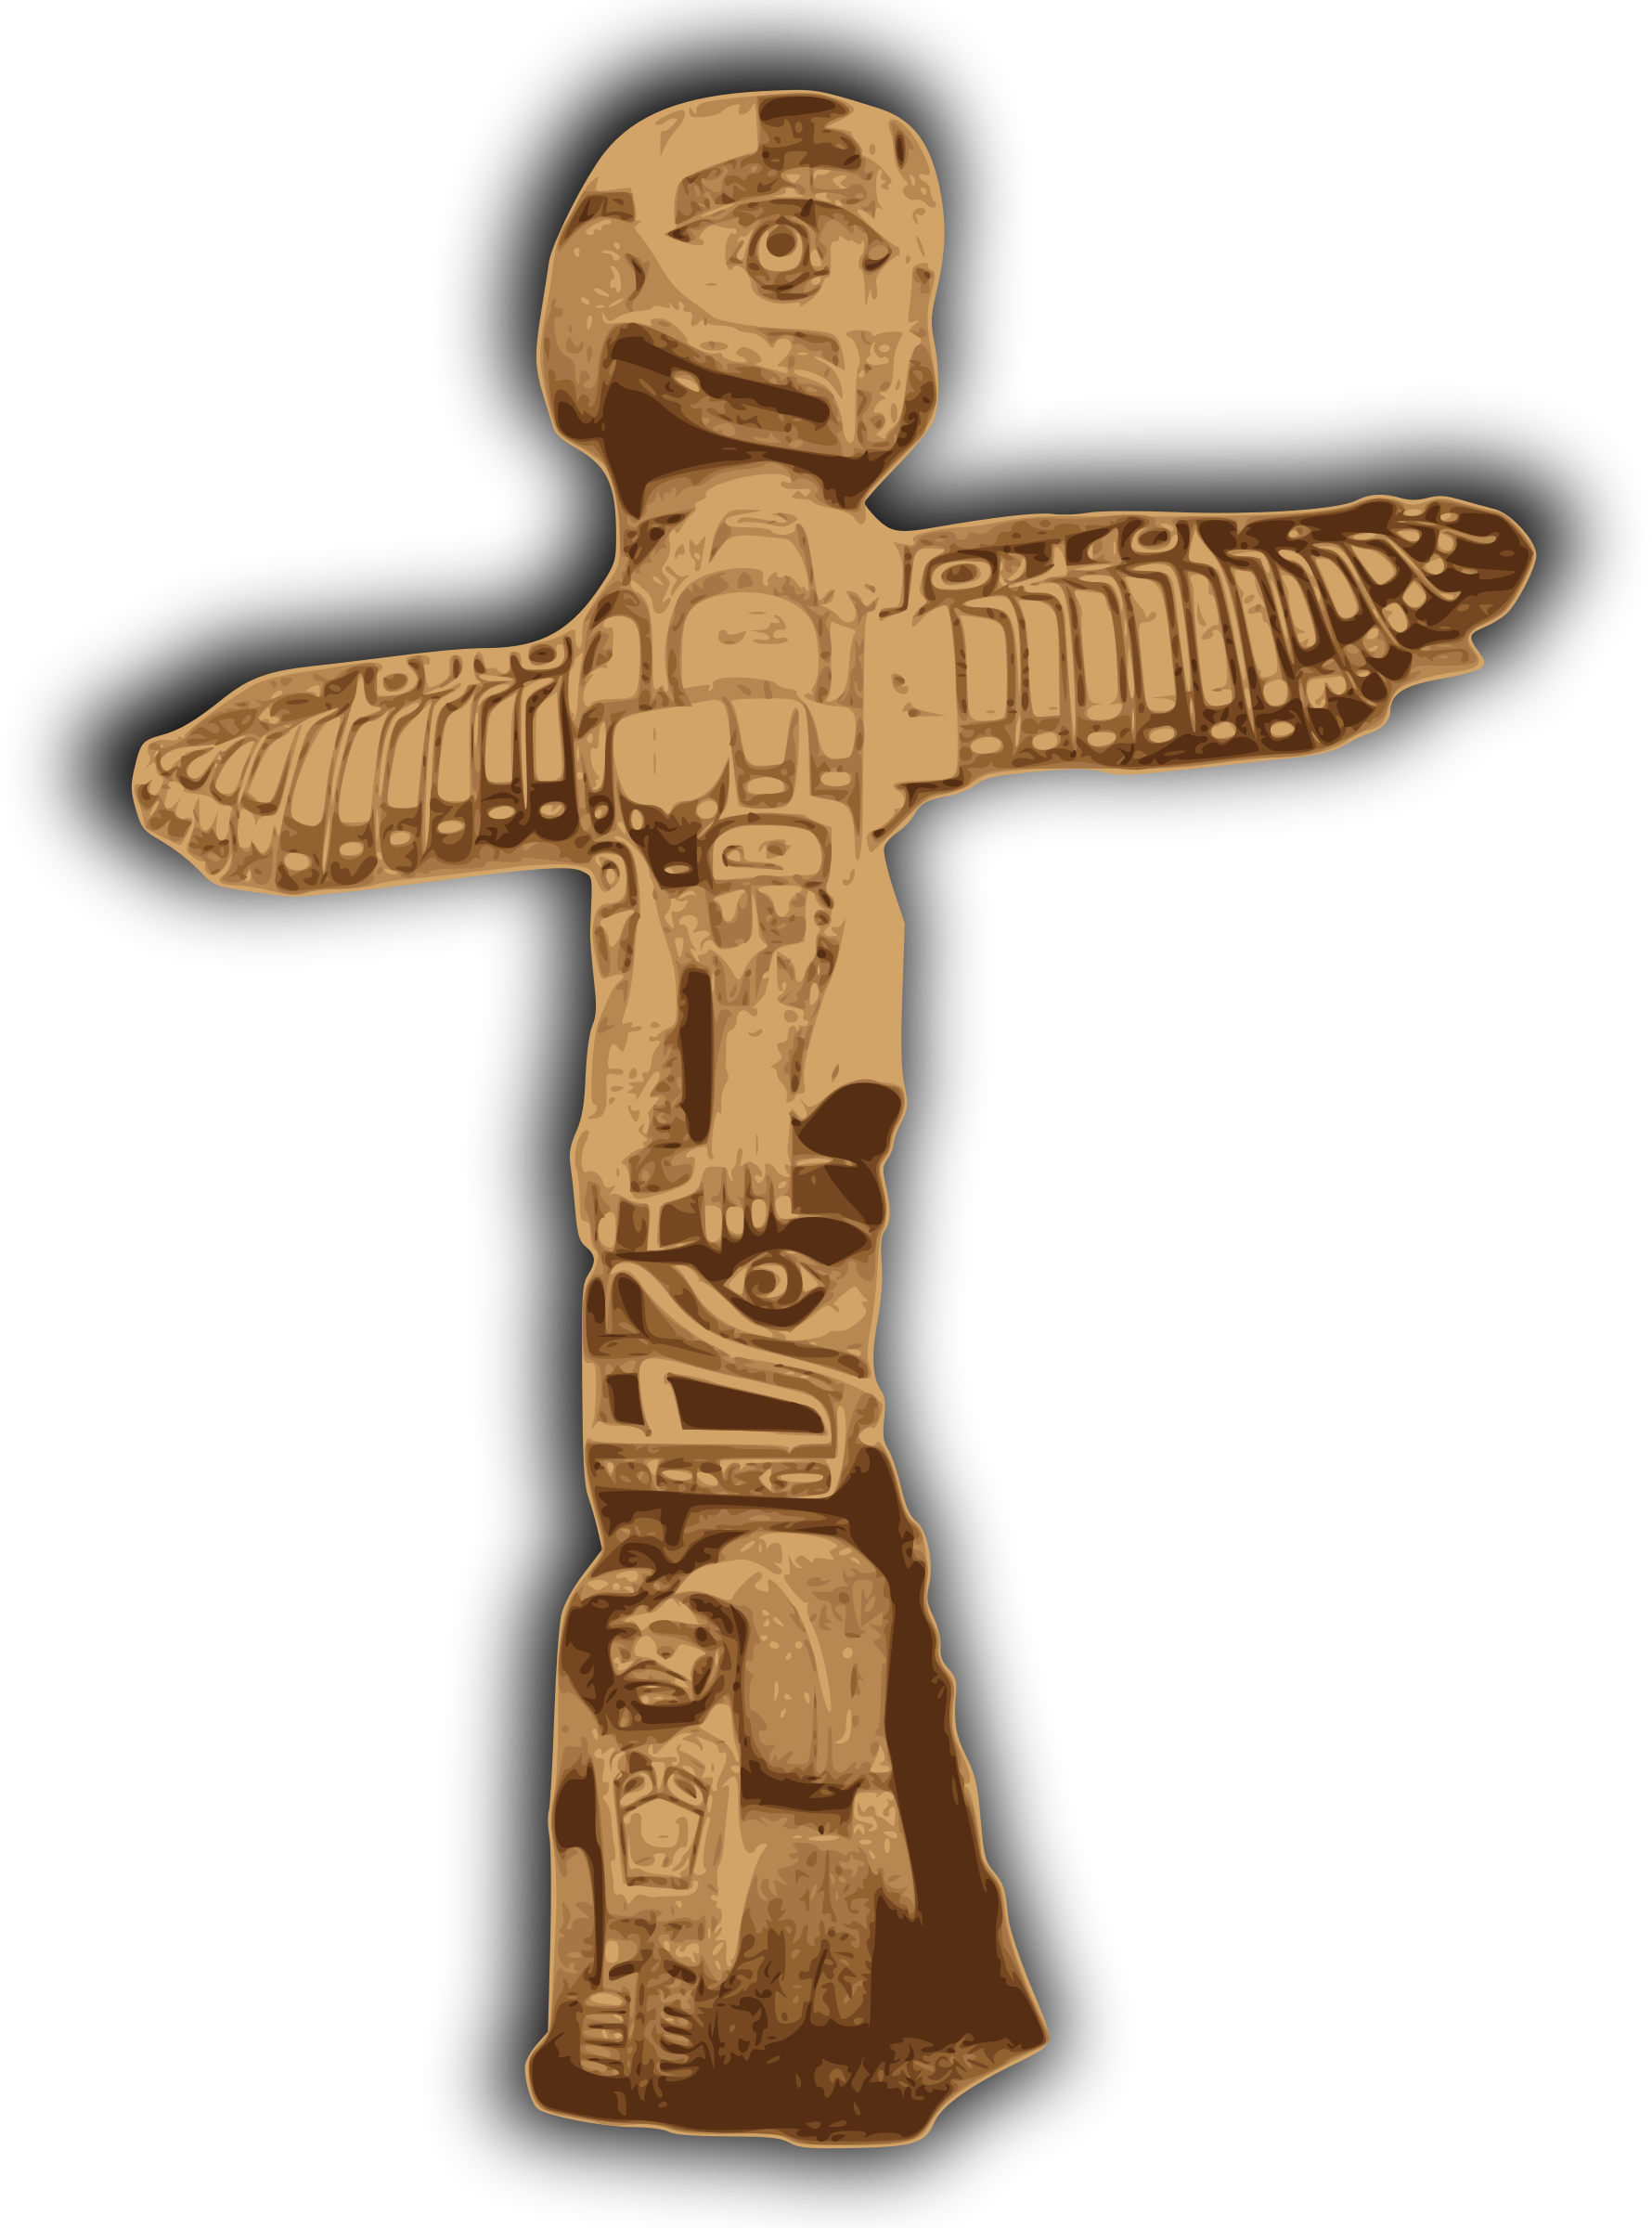 Public domain cross clipart image royalty free library Clipart - Totem Pole image royalty free library